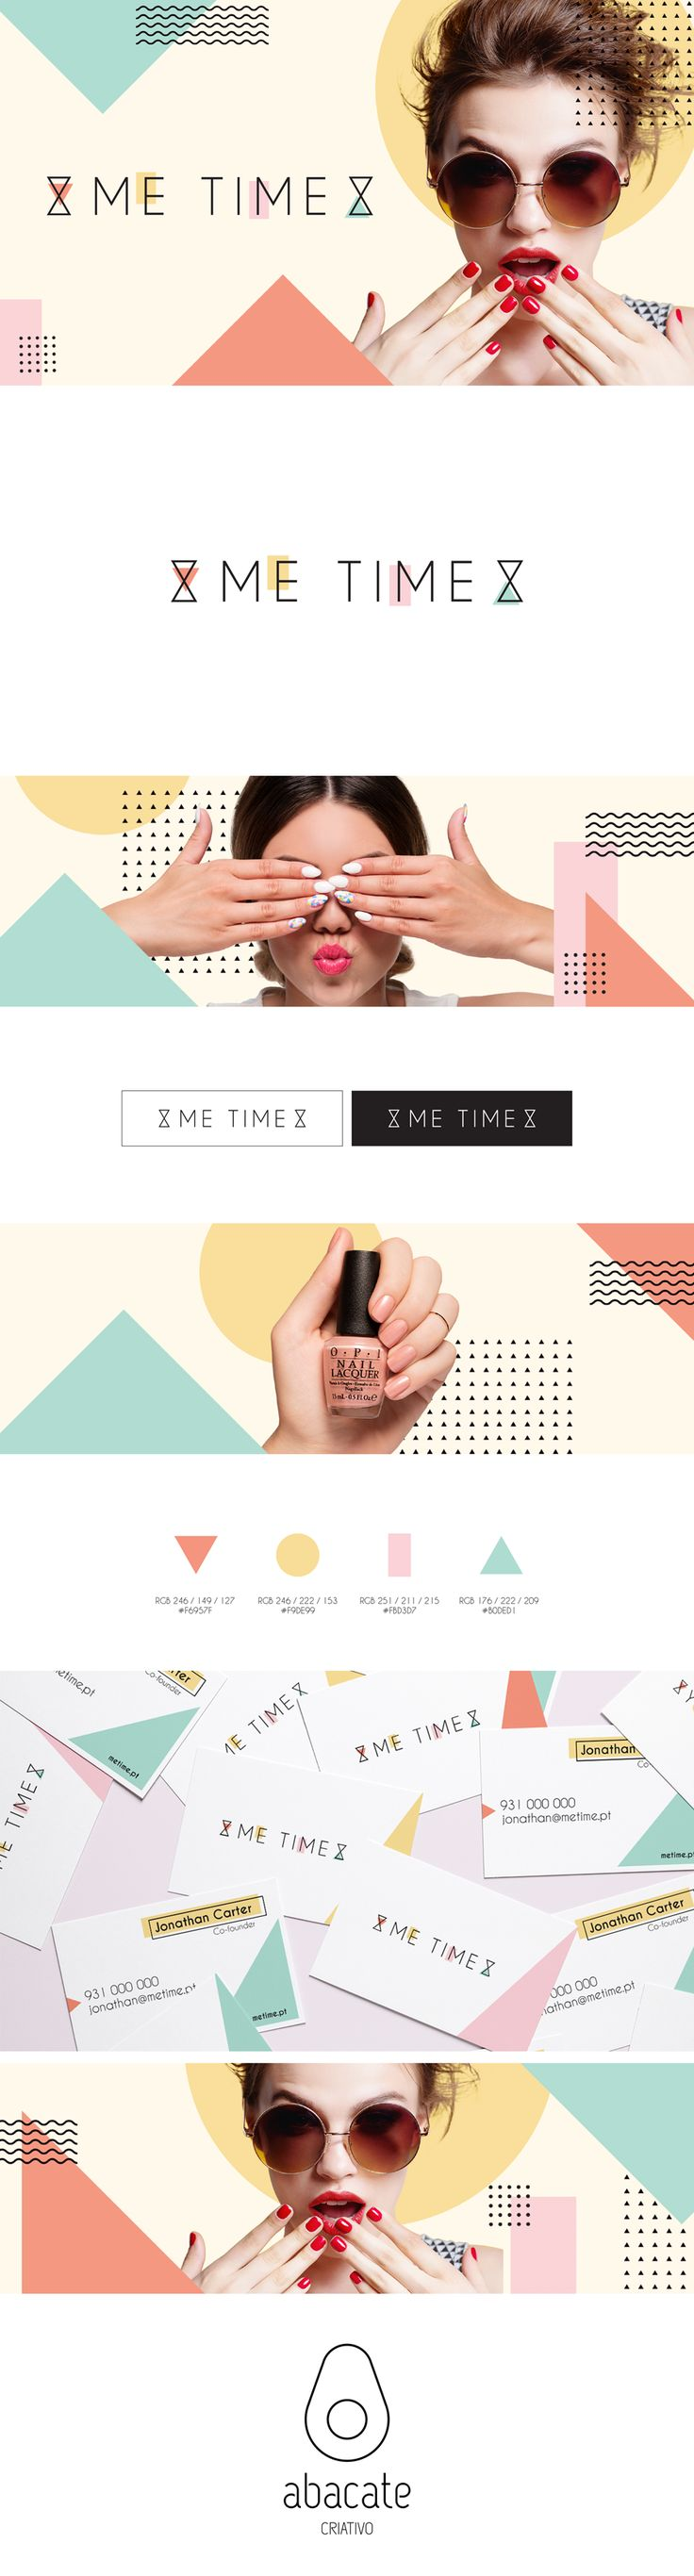 Me Time #graphicdesign #brand #branding #design #designgrafico #abacatecriativo #Buinesscard #layout #metime